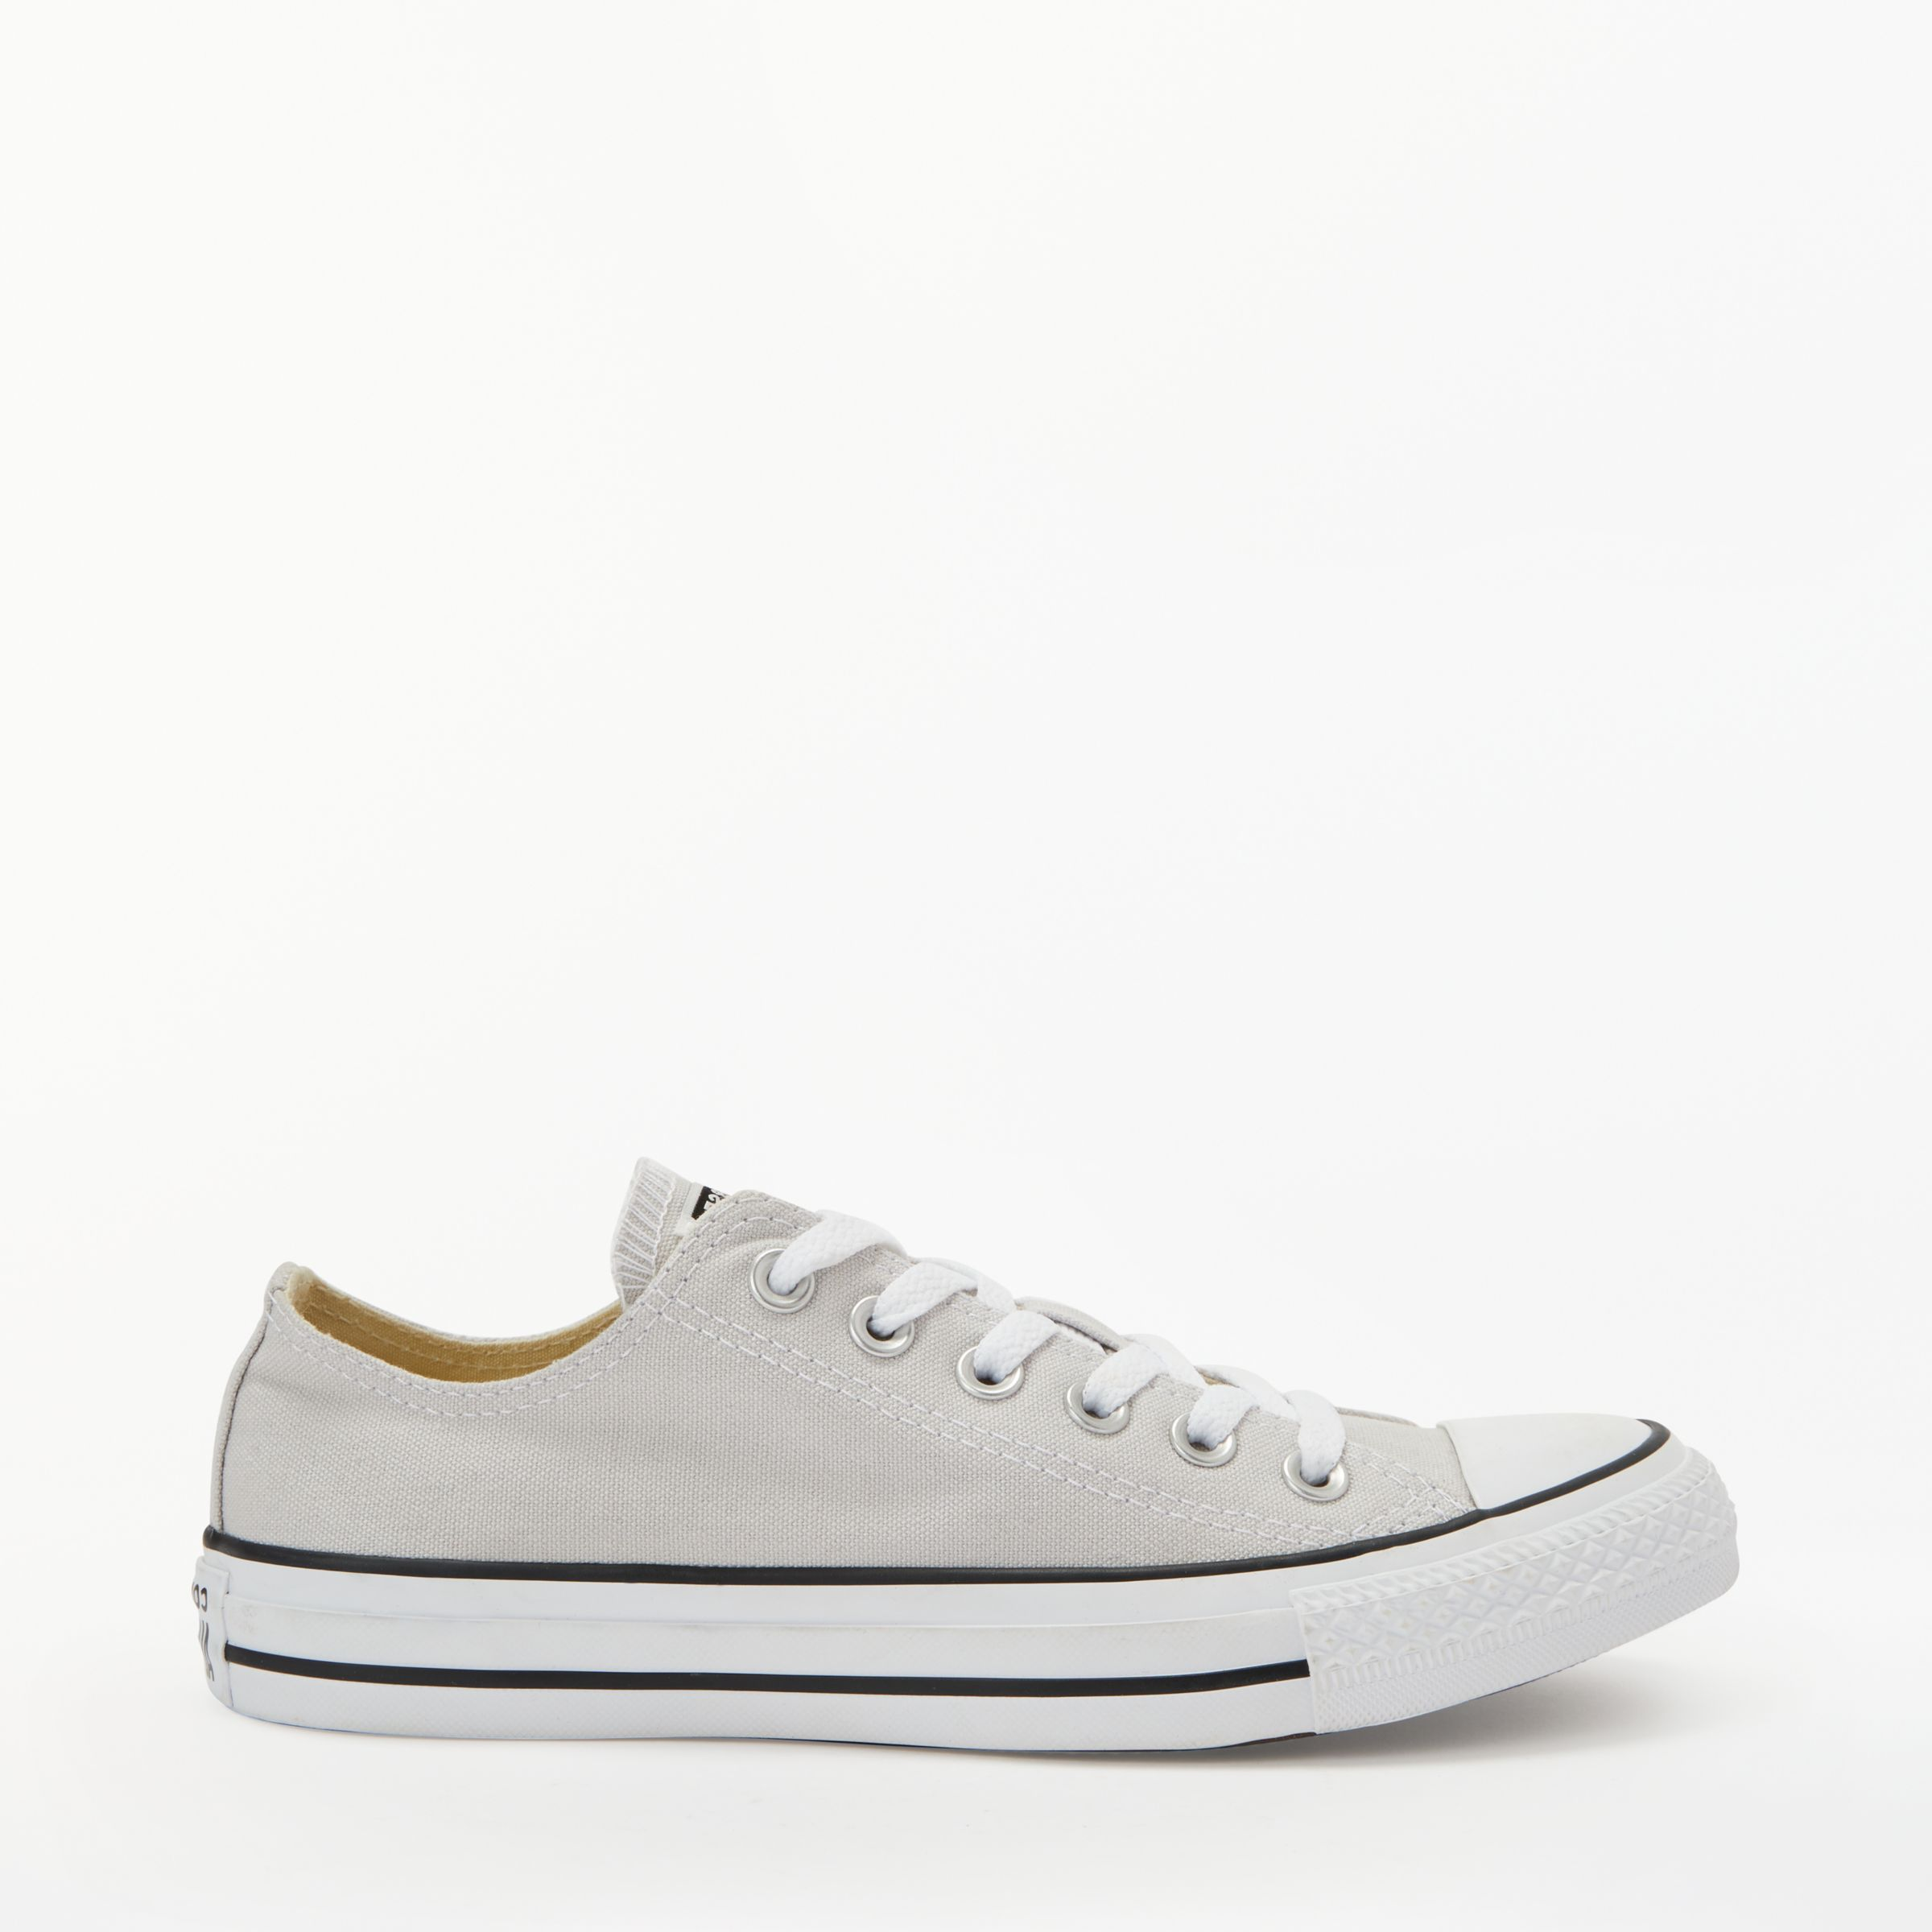 Converse Chuck Taylor All Star Women s Canvas Ox Low-Top Trainers ... 7c88e922c6533